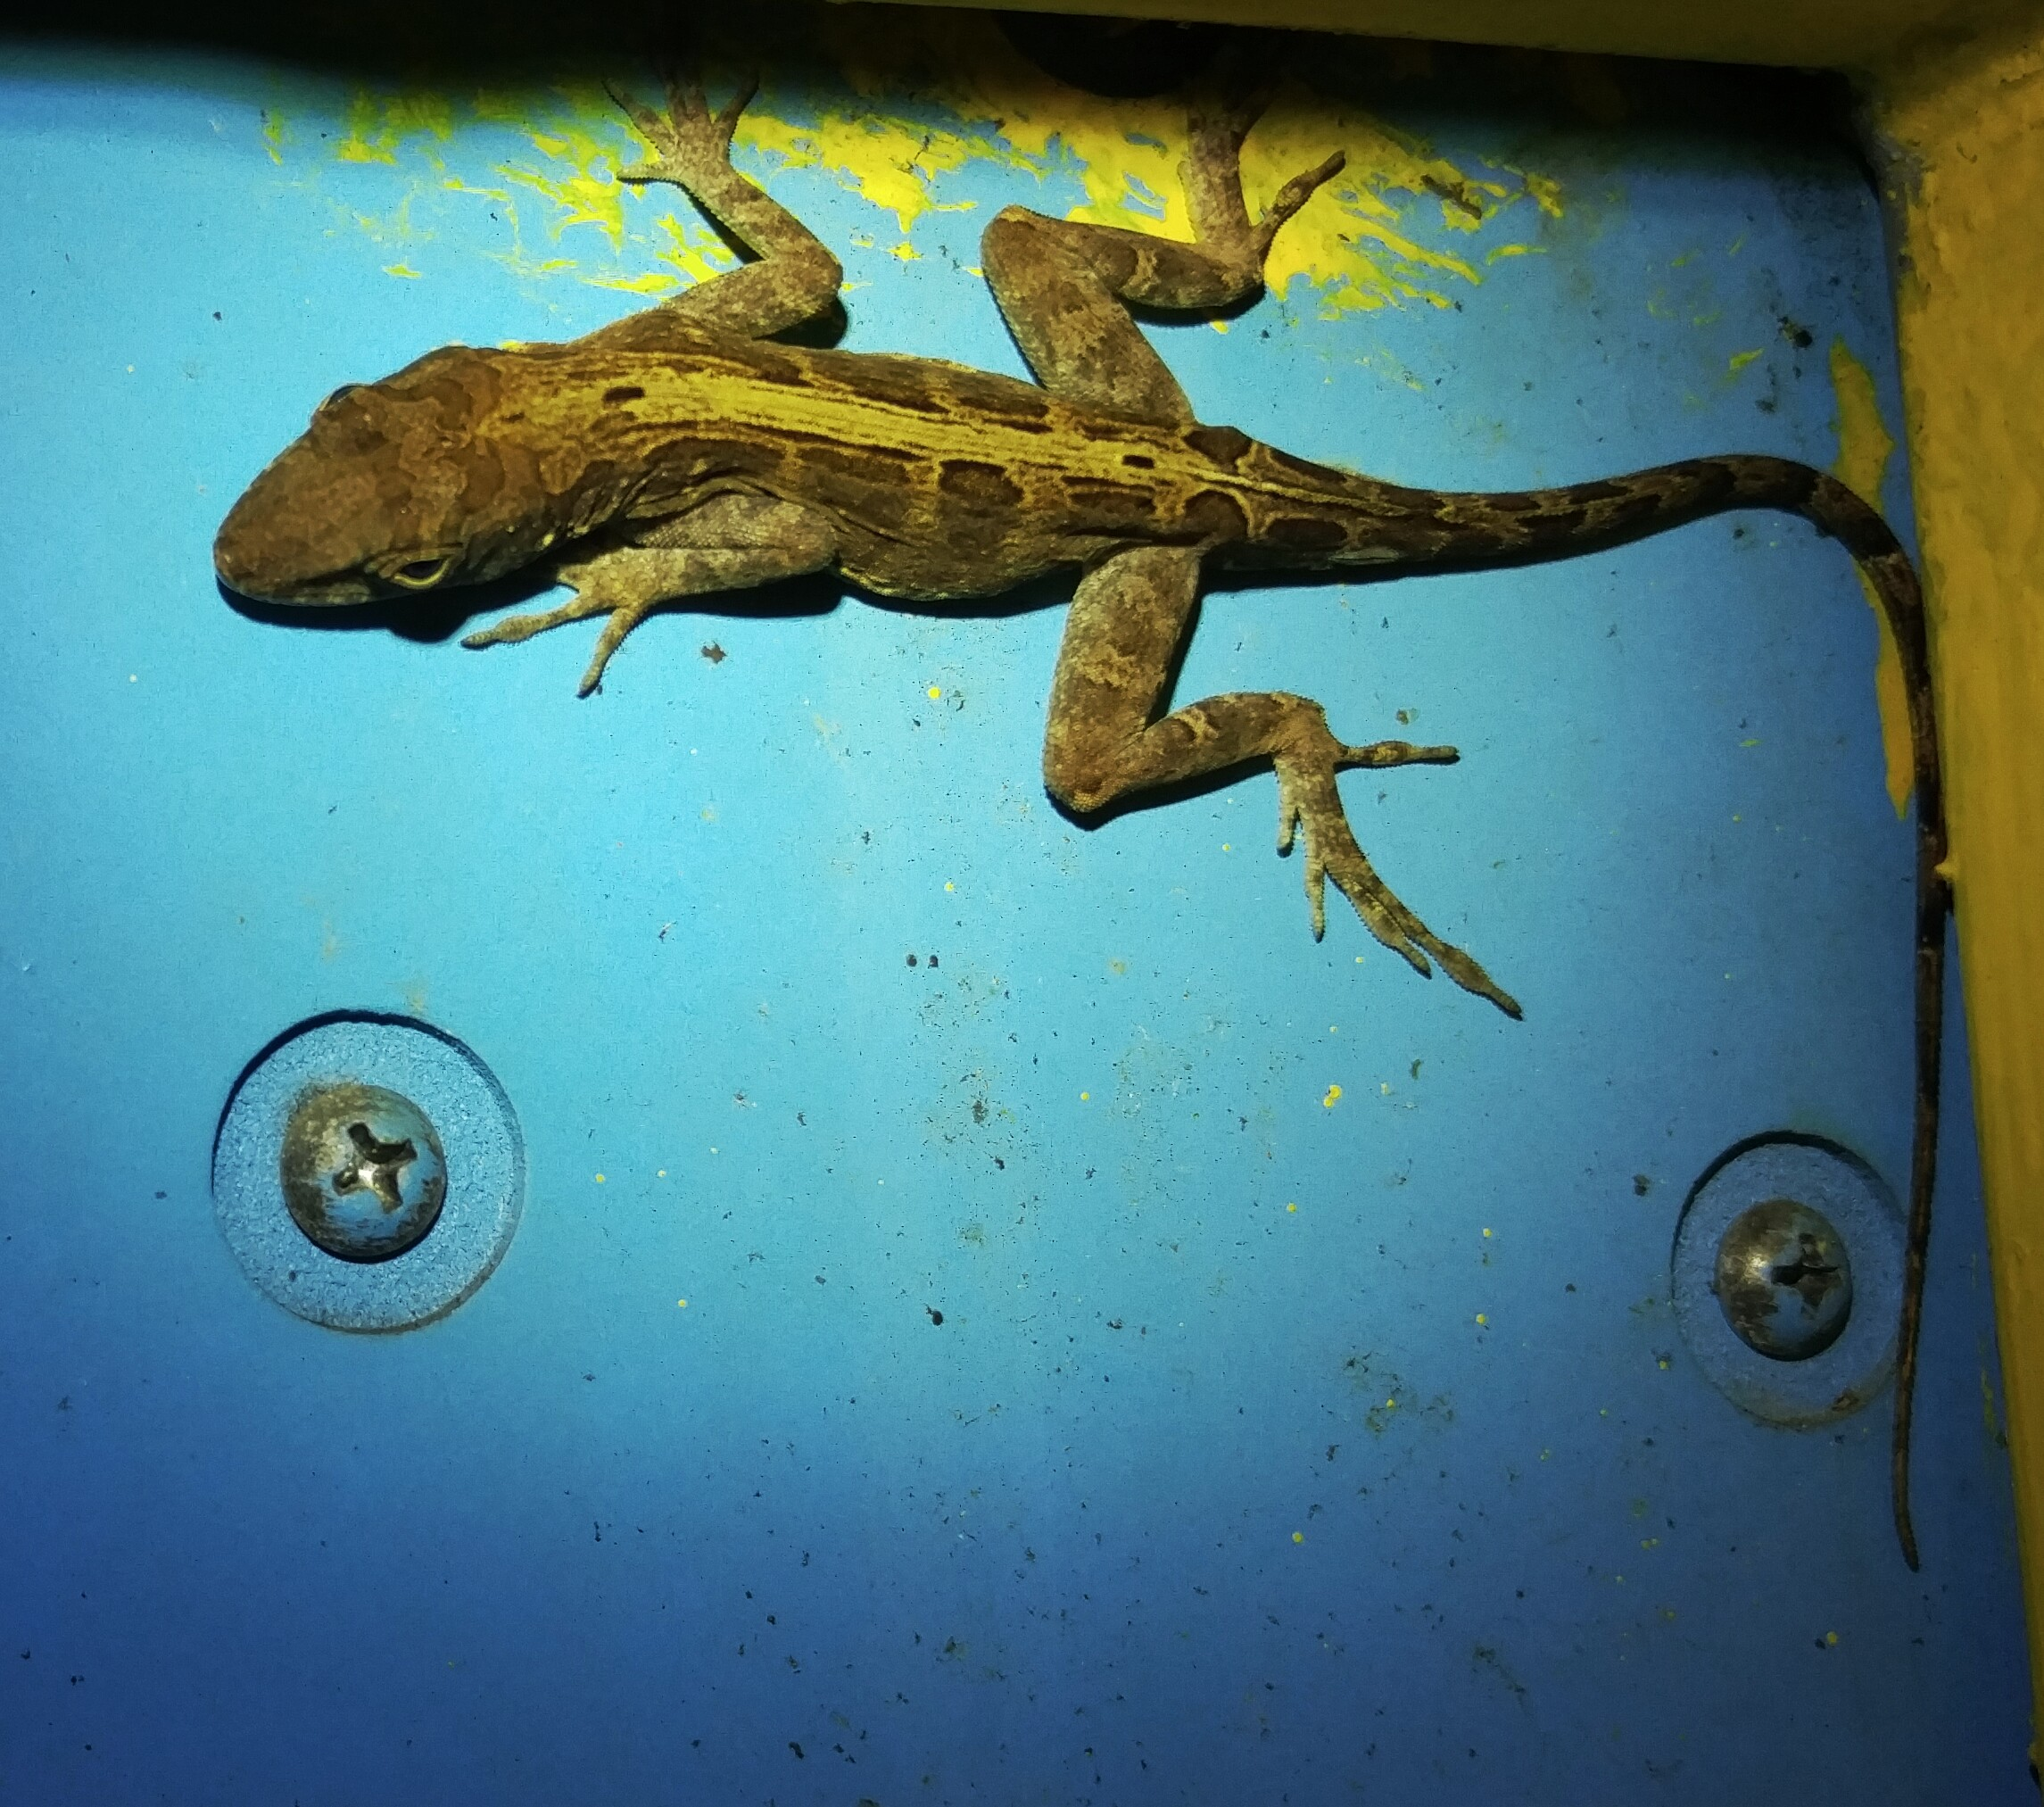 Puerto Rican Crested Anole  sleeping behind a sign,  Anolis cristatellus